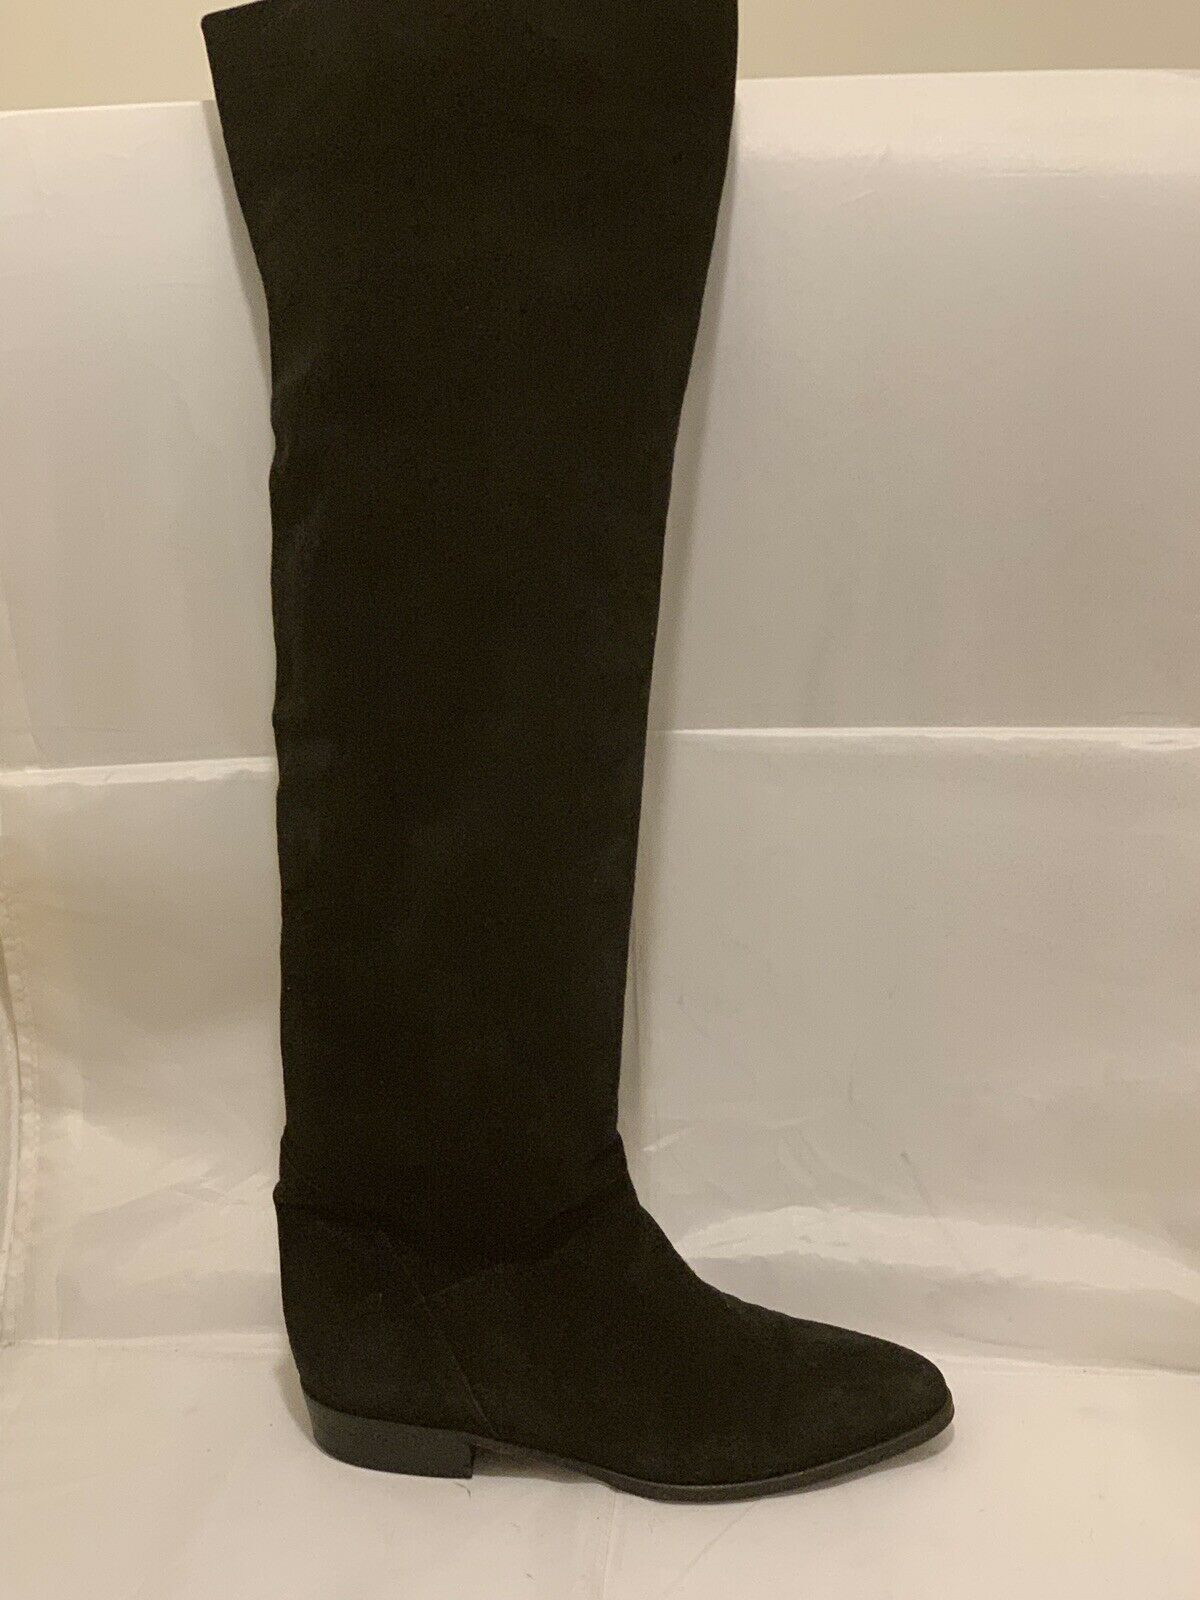 VERO CUOLO OVER OVER OVER KNEE BLACK SUEDE FLAT BOOTS ITALY SZ 39.5 EXCELLENT 65be96